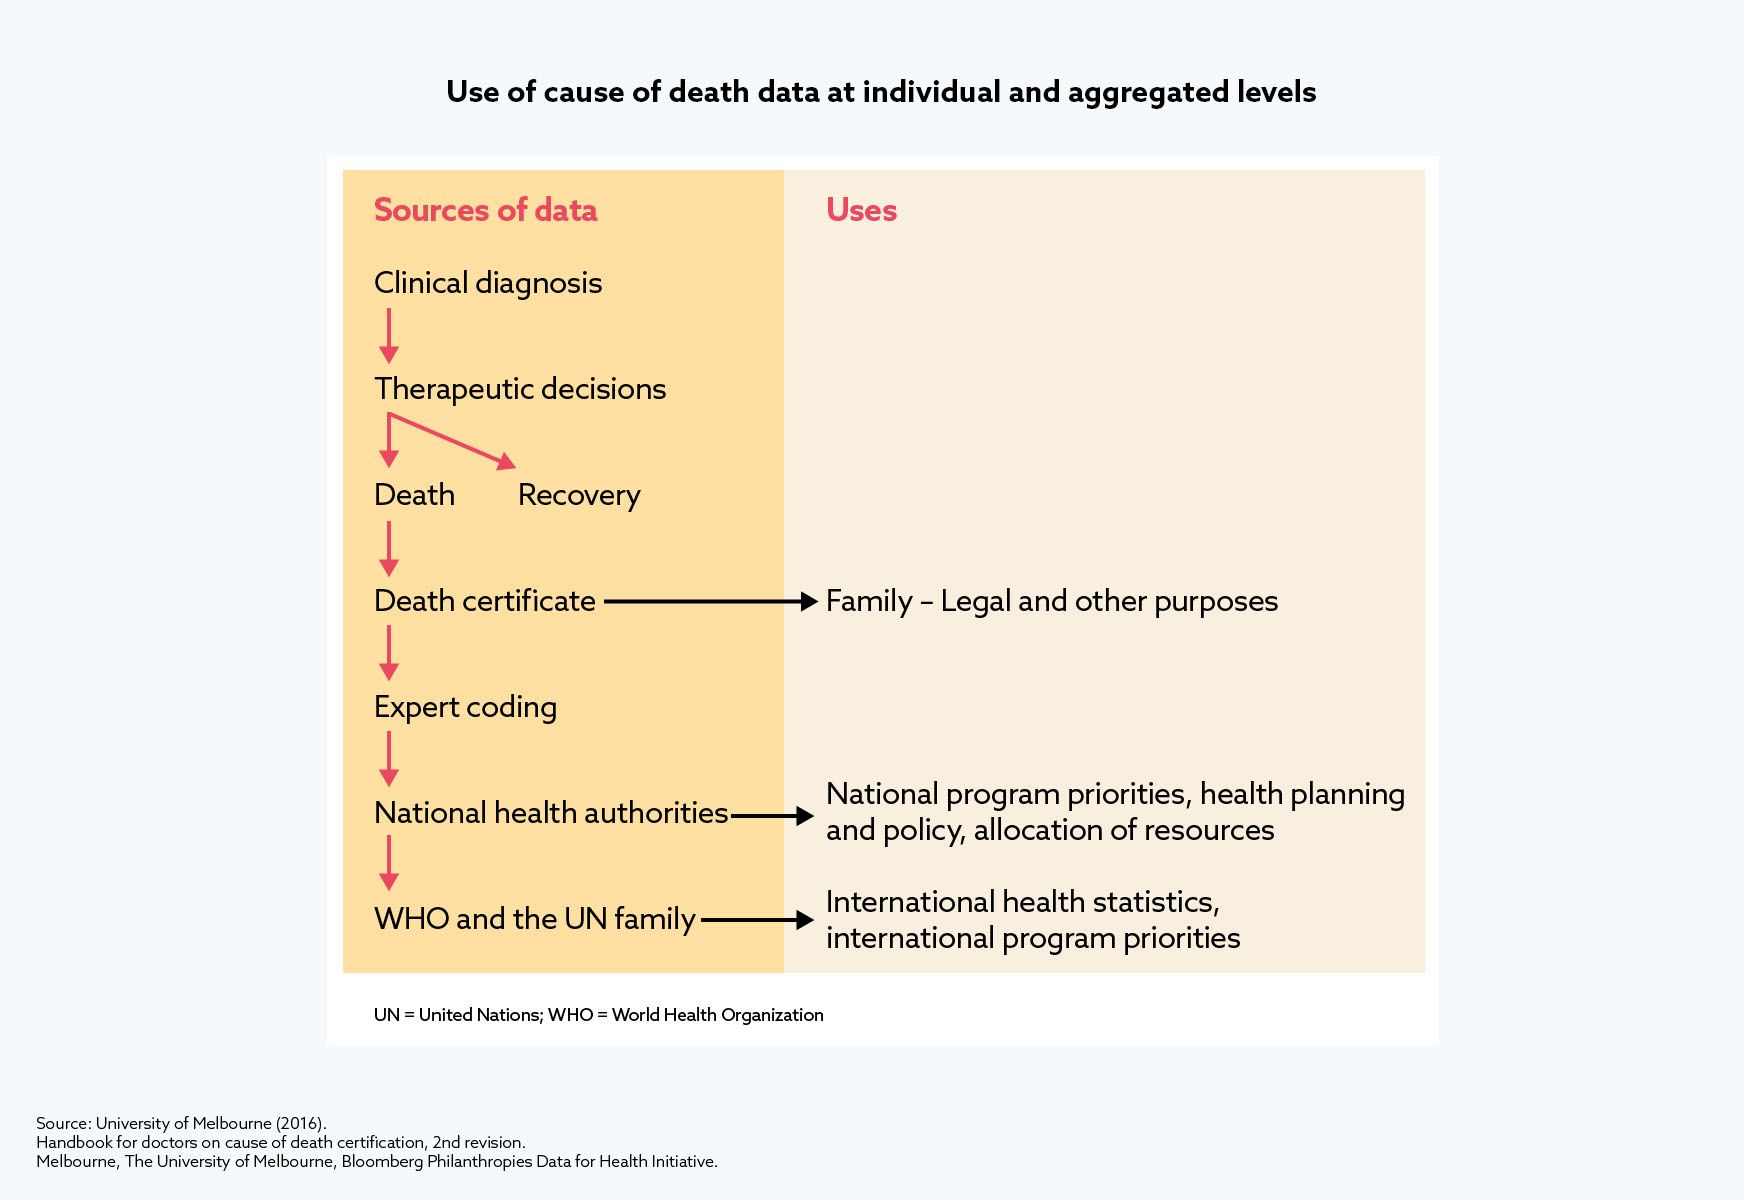 Use of cause of death data at individual and aggregated levels